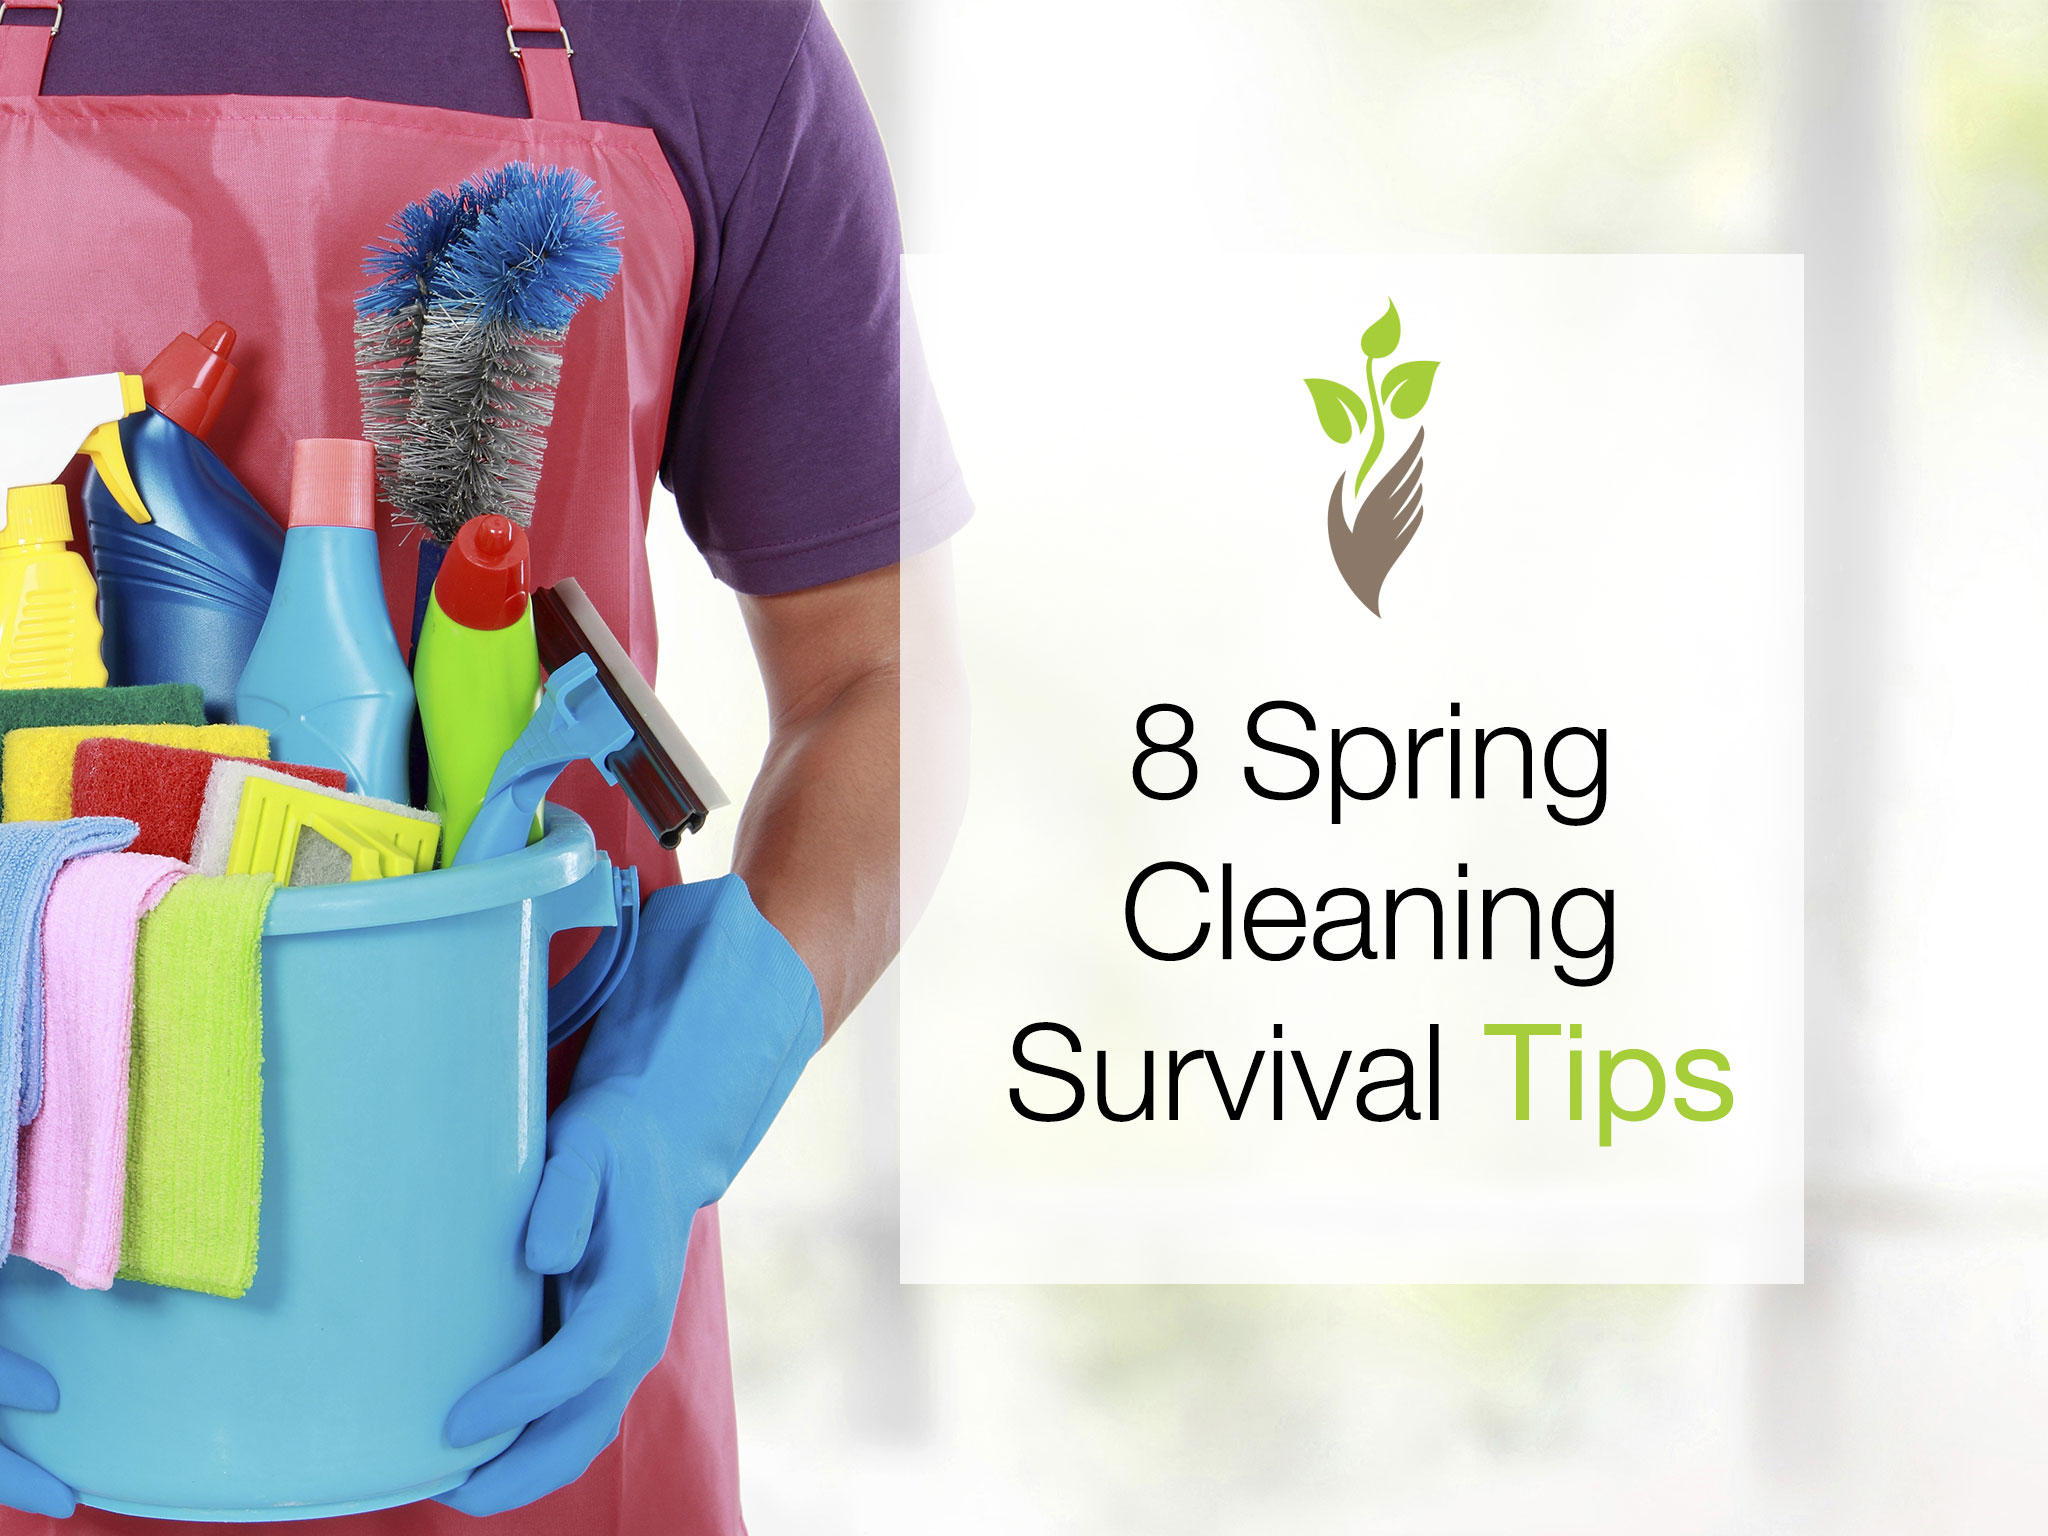 8 Spring Cleaning Survival Tips